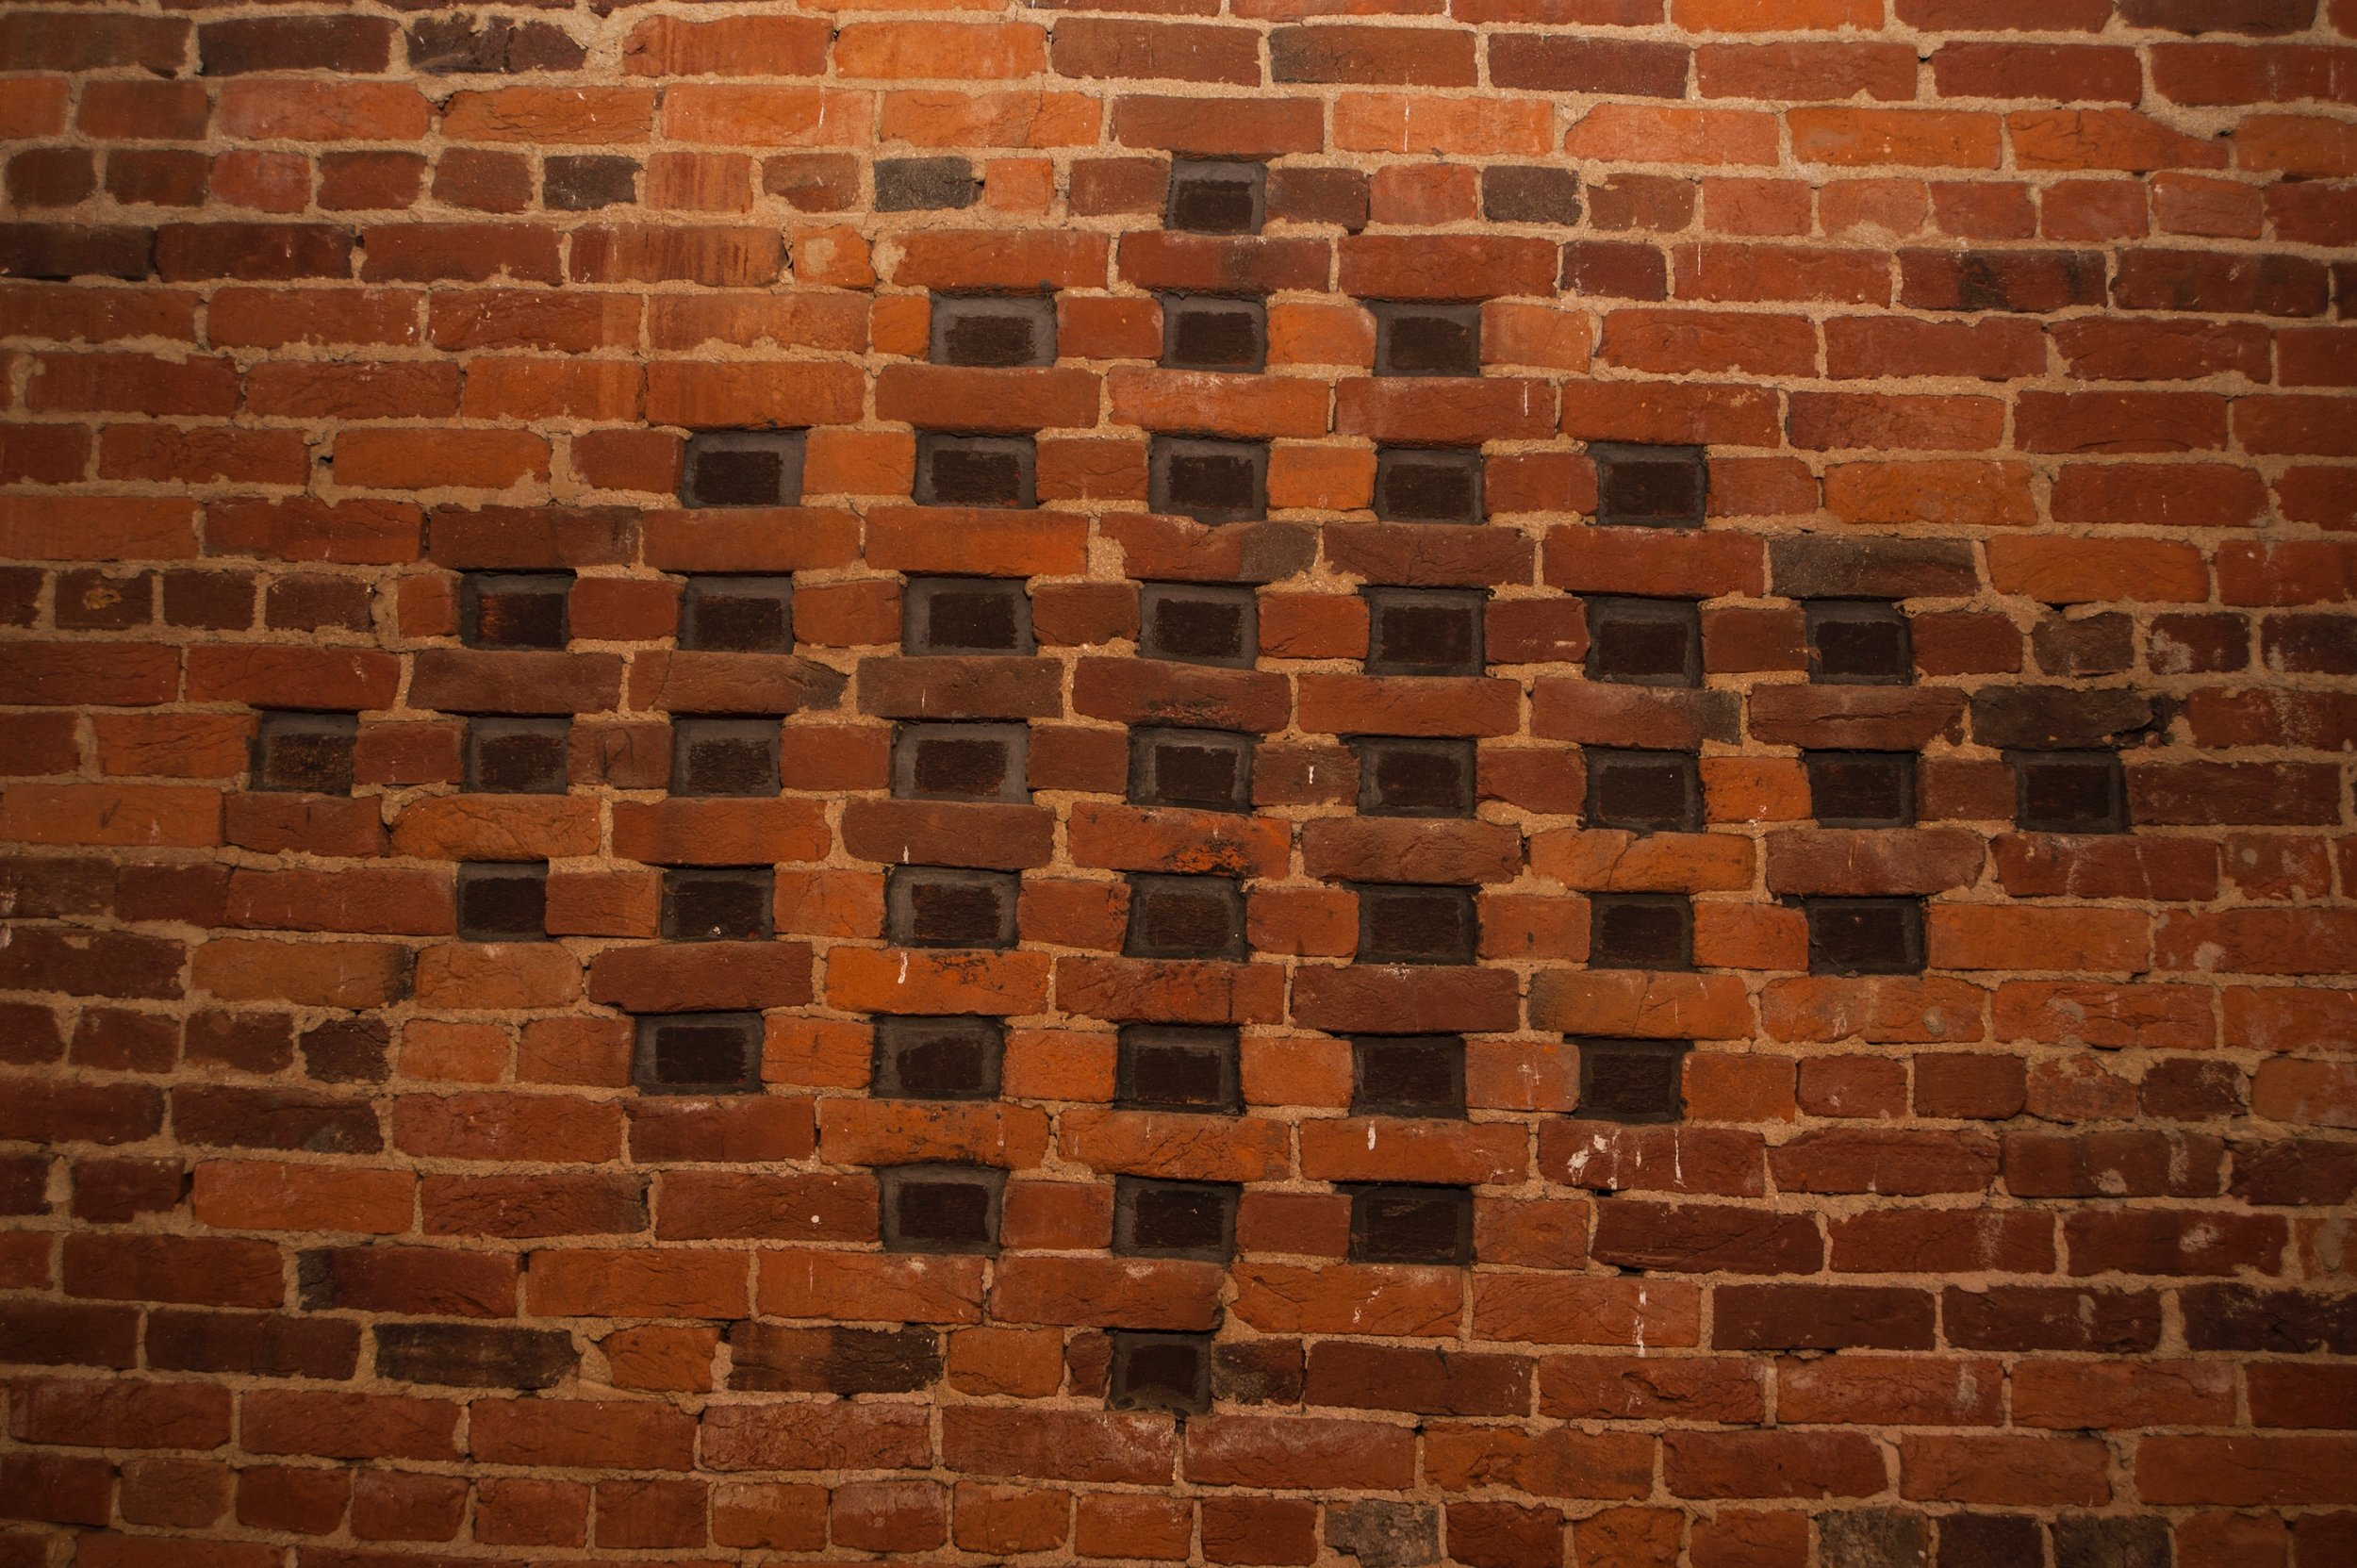 """""""Vents"""" were engineered by Allen Cochran to resemble the real thing. To give the illusion of openings, he set black bricks on end and recessed them."""